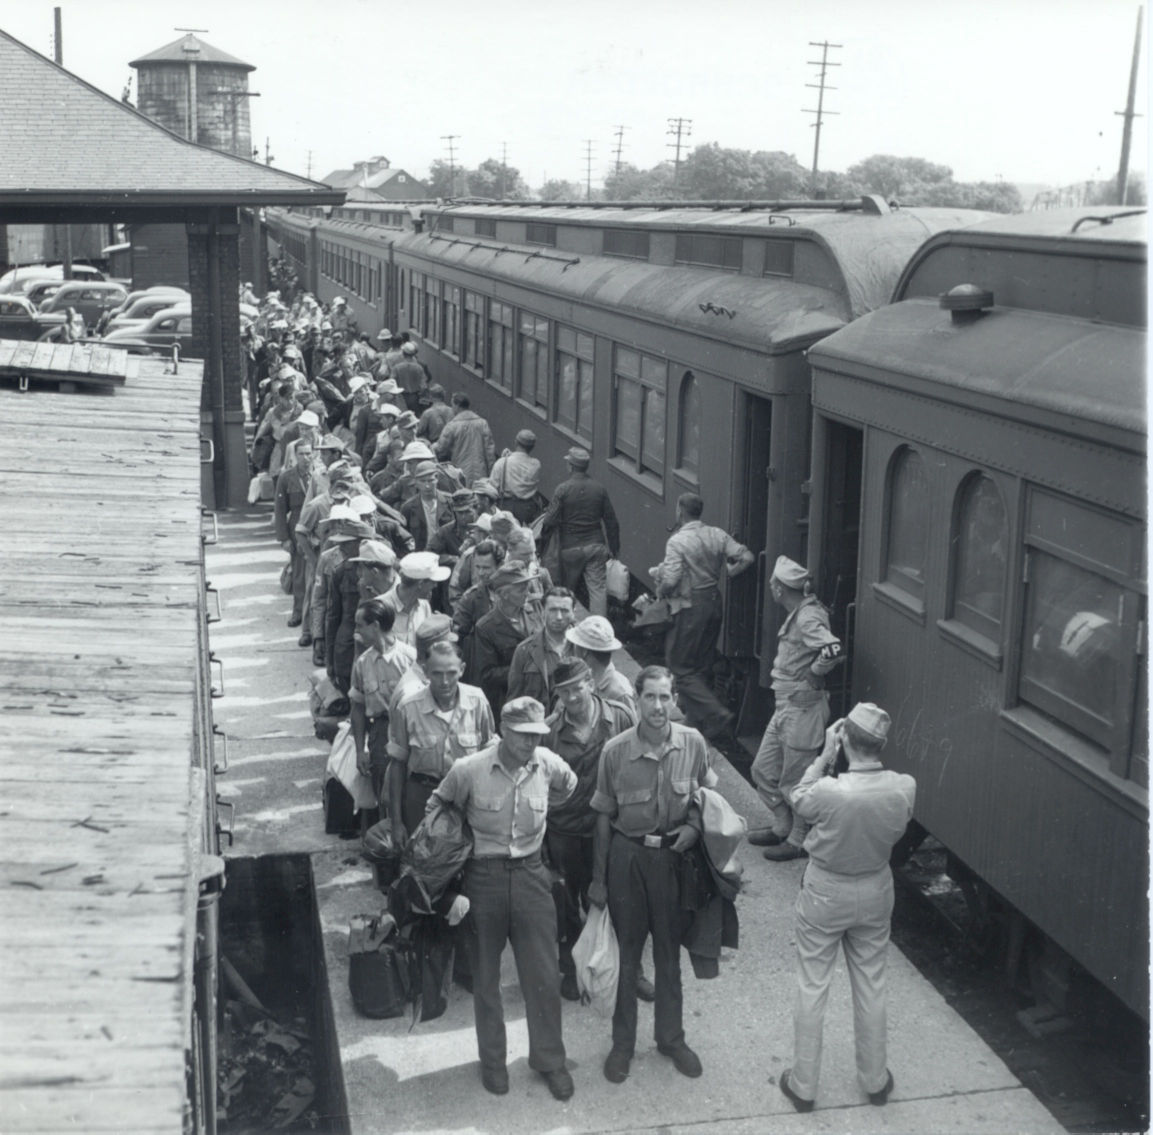 Lined up at the station